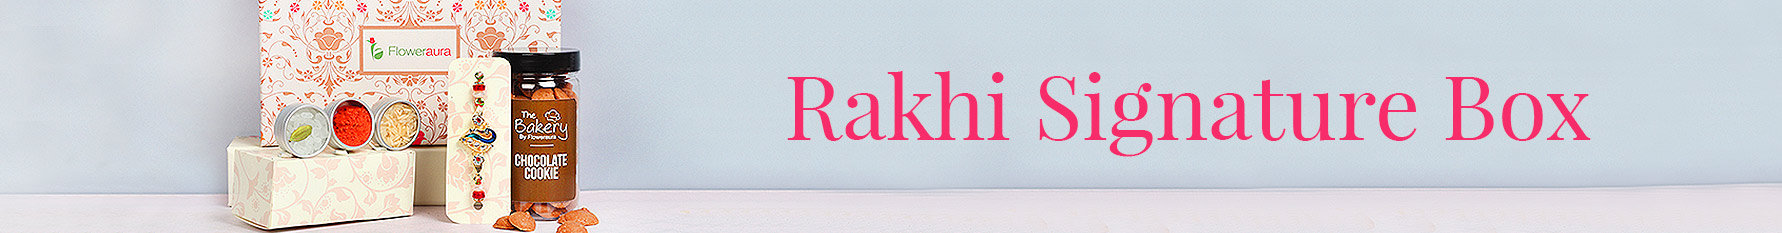 Signature box Rakhi Gifts